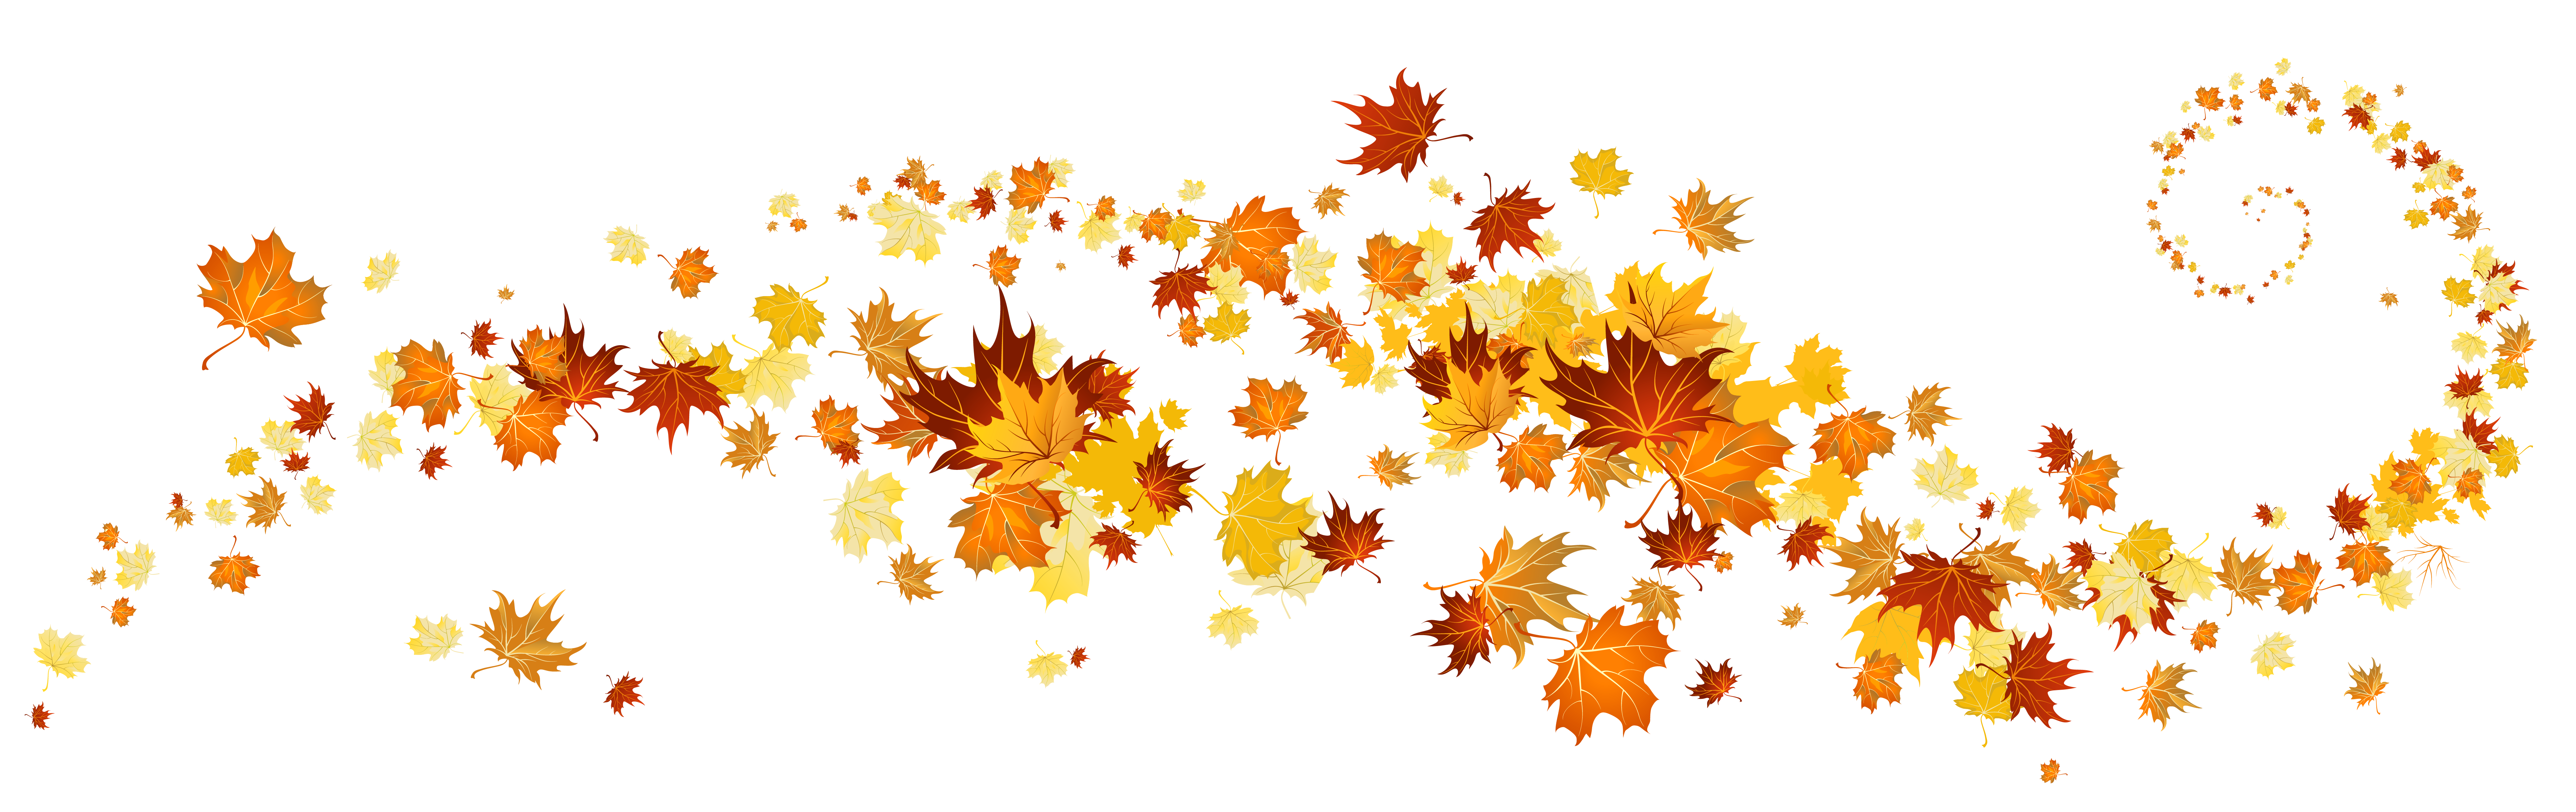 November flower clipart image library library August 2017 – Washoe Republican Women image library library